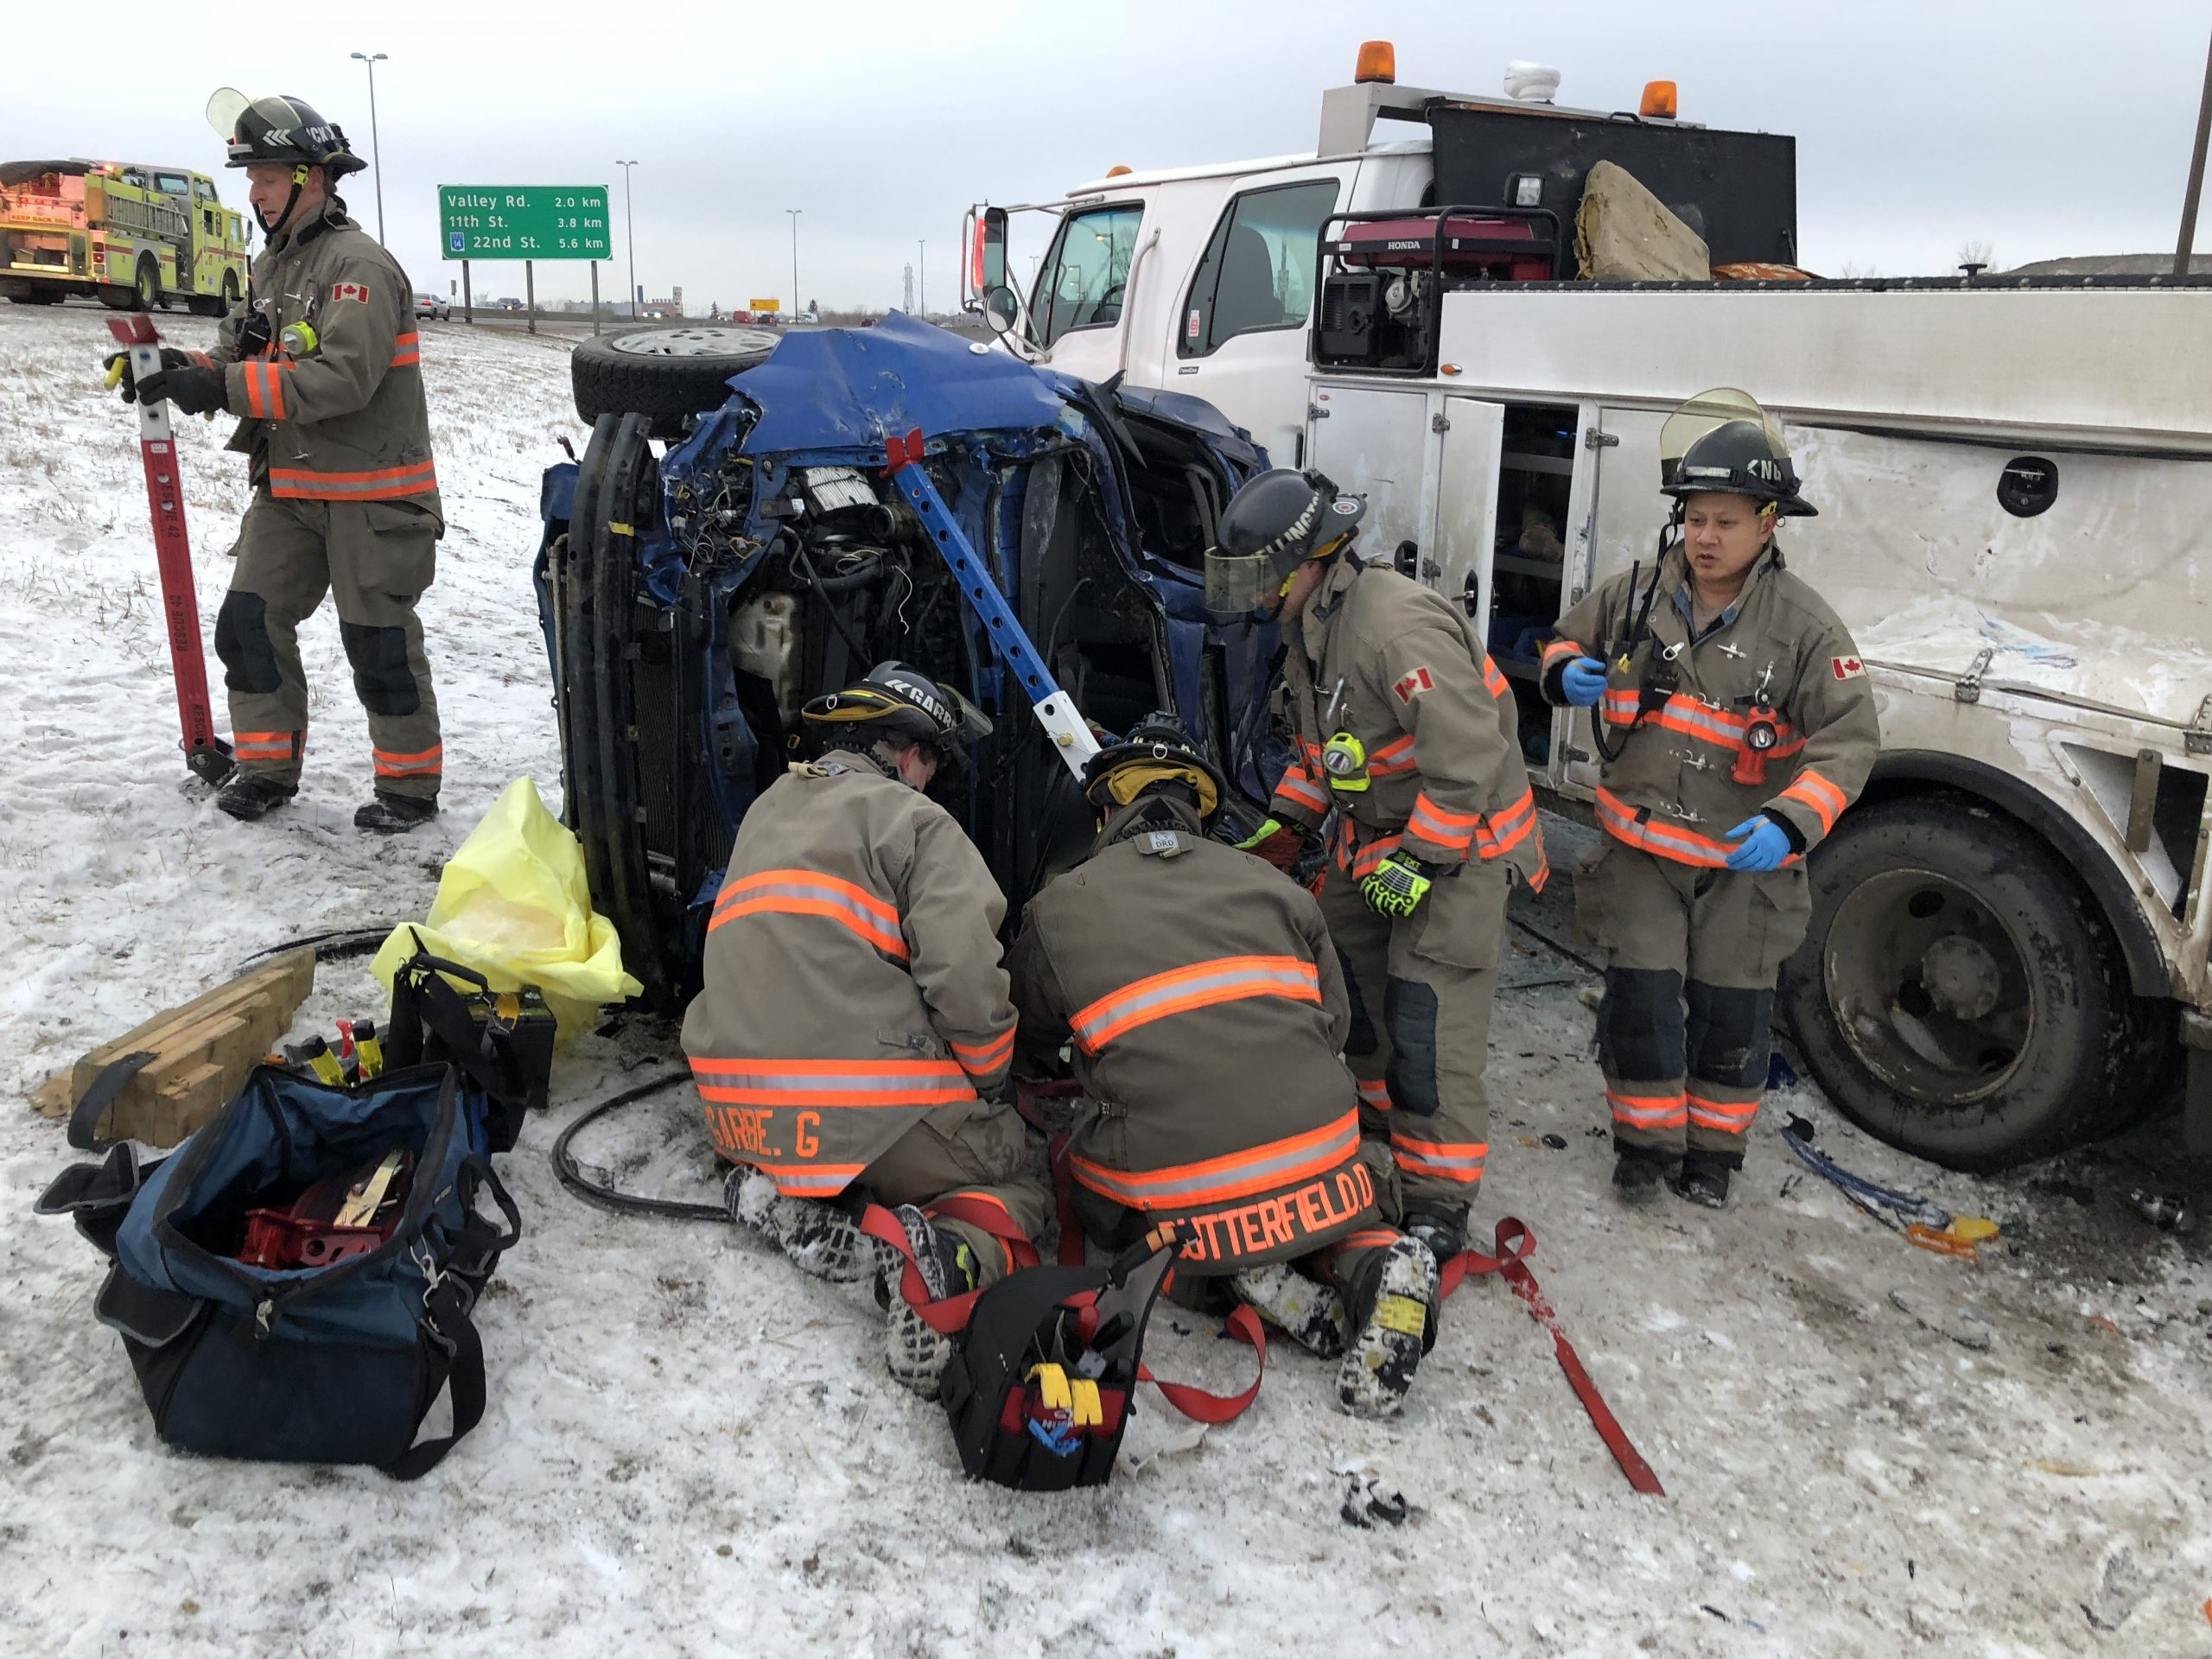 Fire Department Rescues Driver from Vehicle